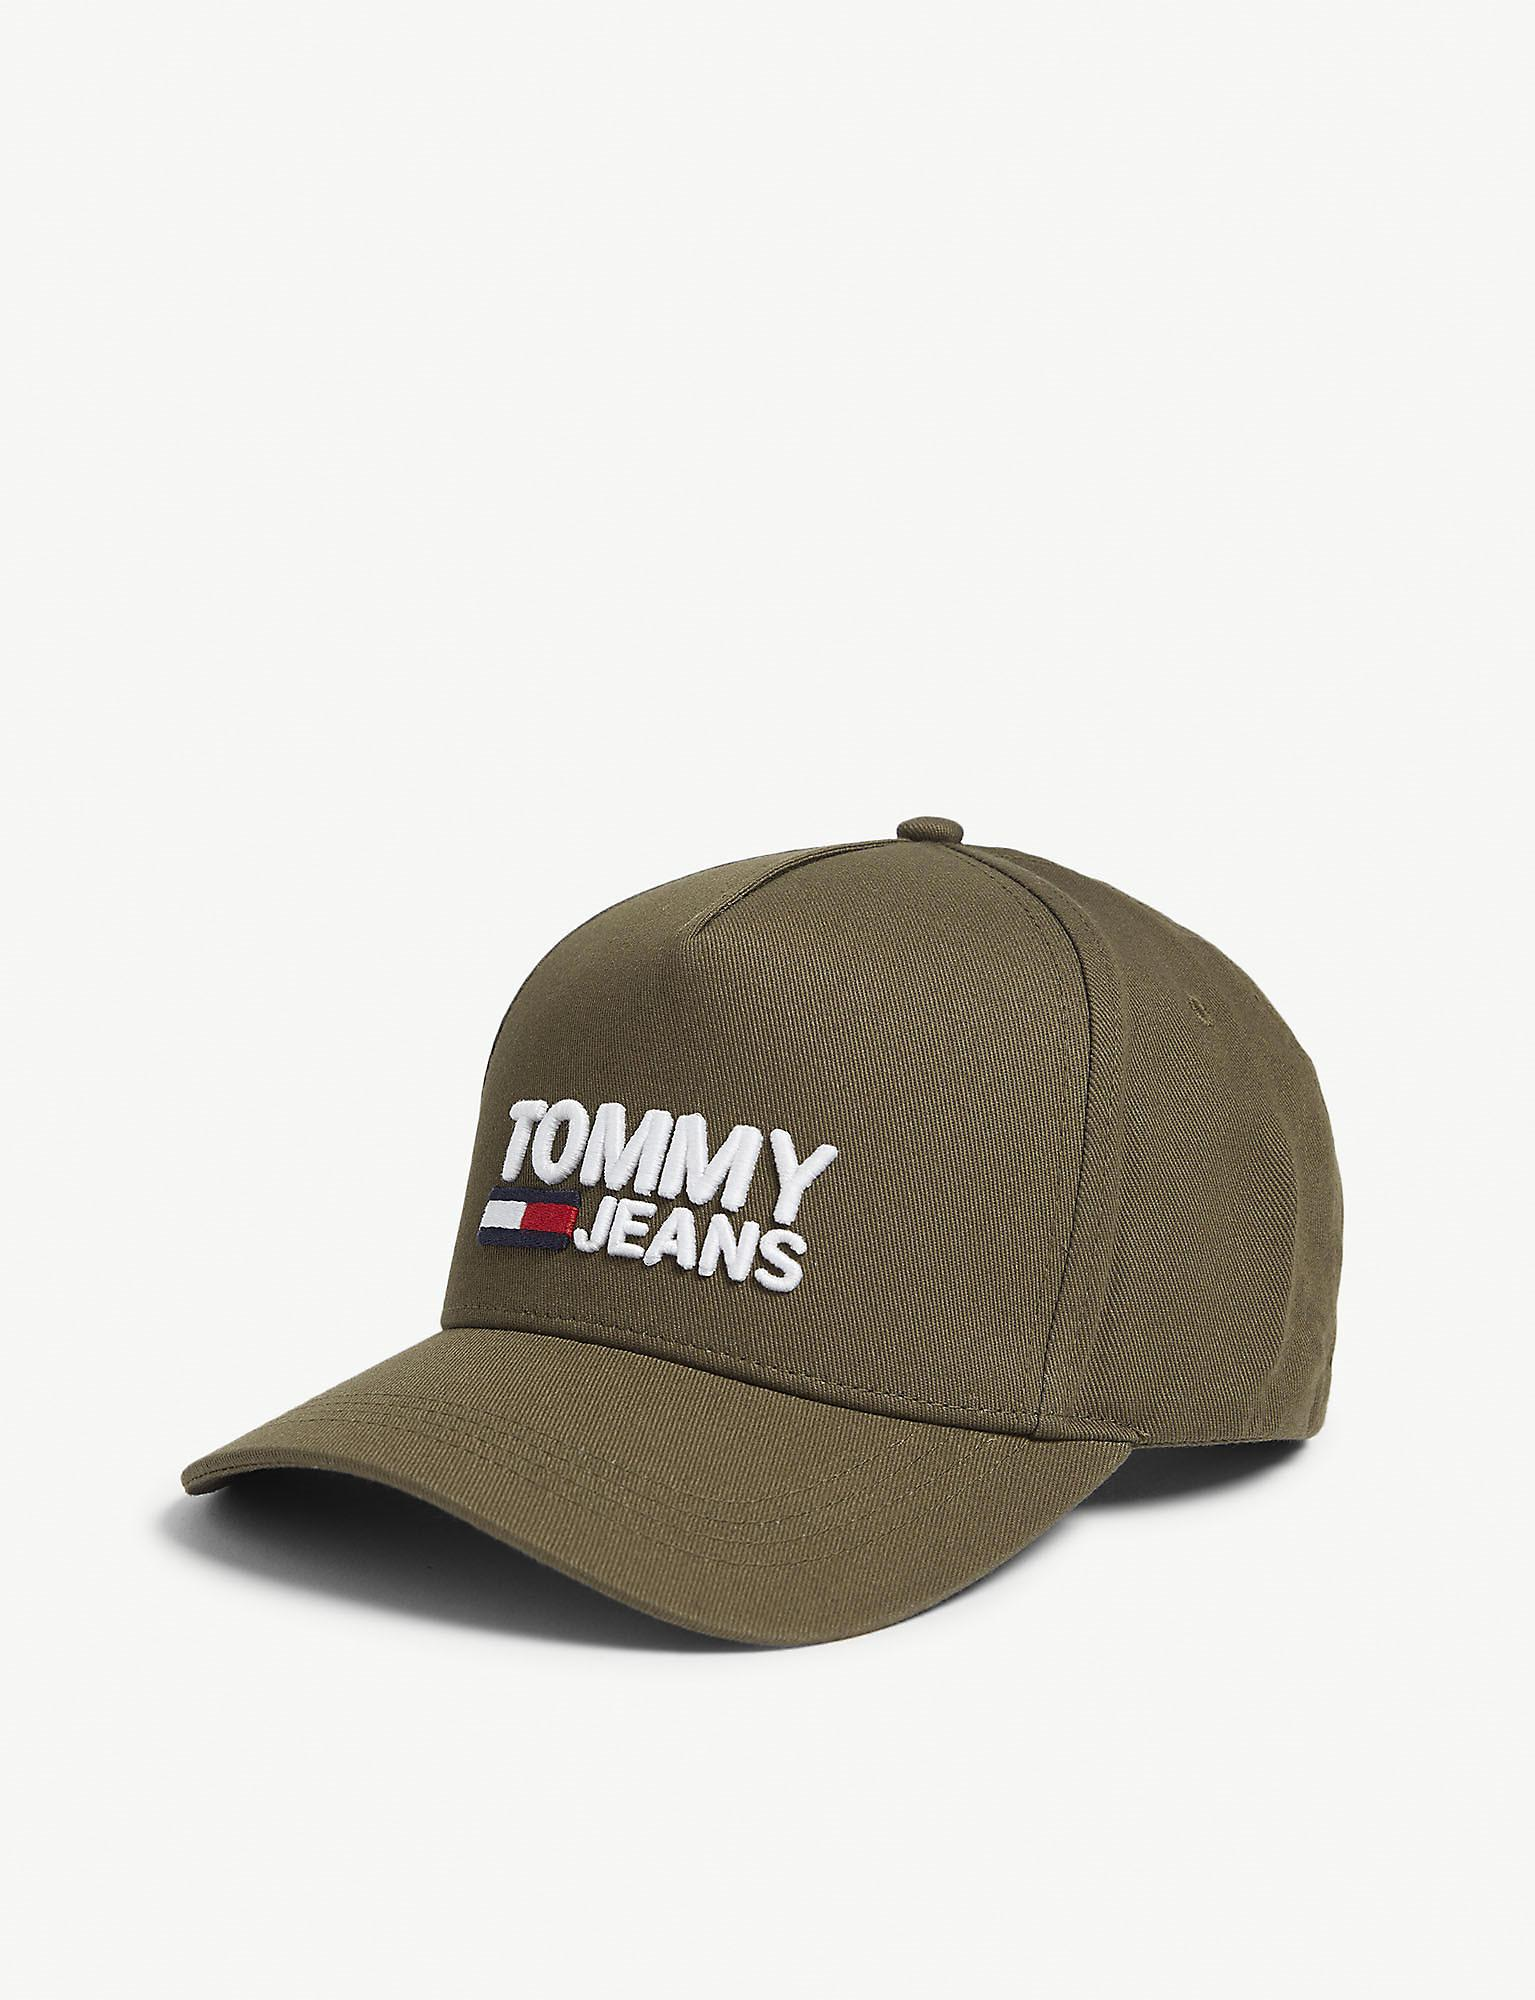 382997dc Tommy Hilfiger Logo-printed Cotton Baseball Cap in Green for Men - Lyst